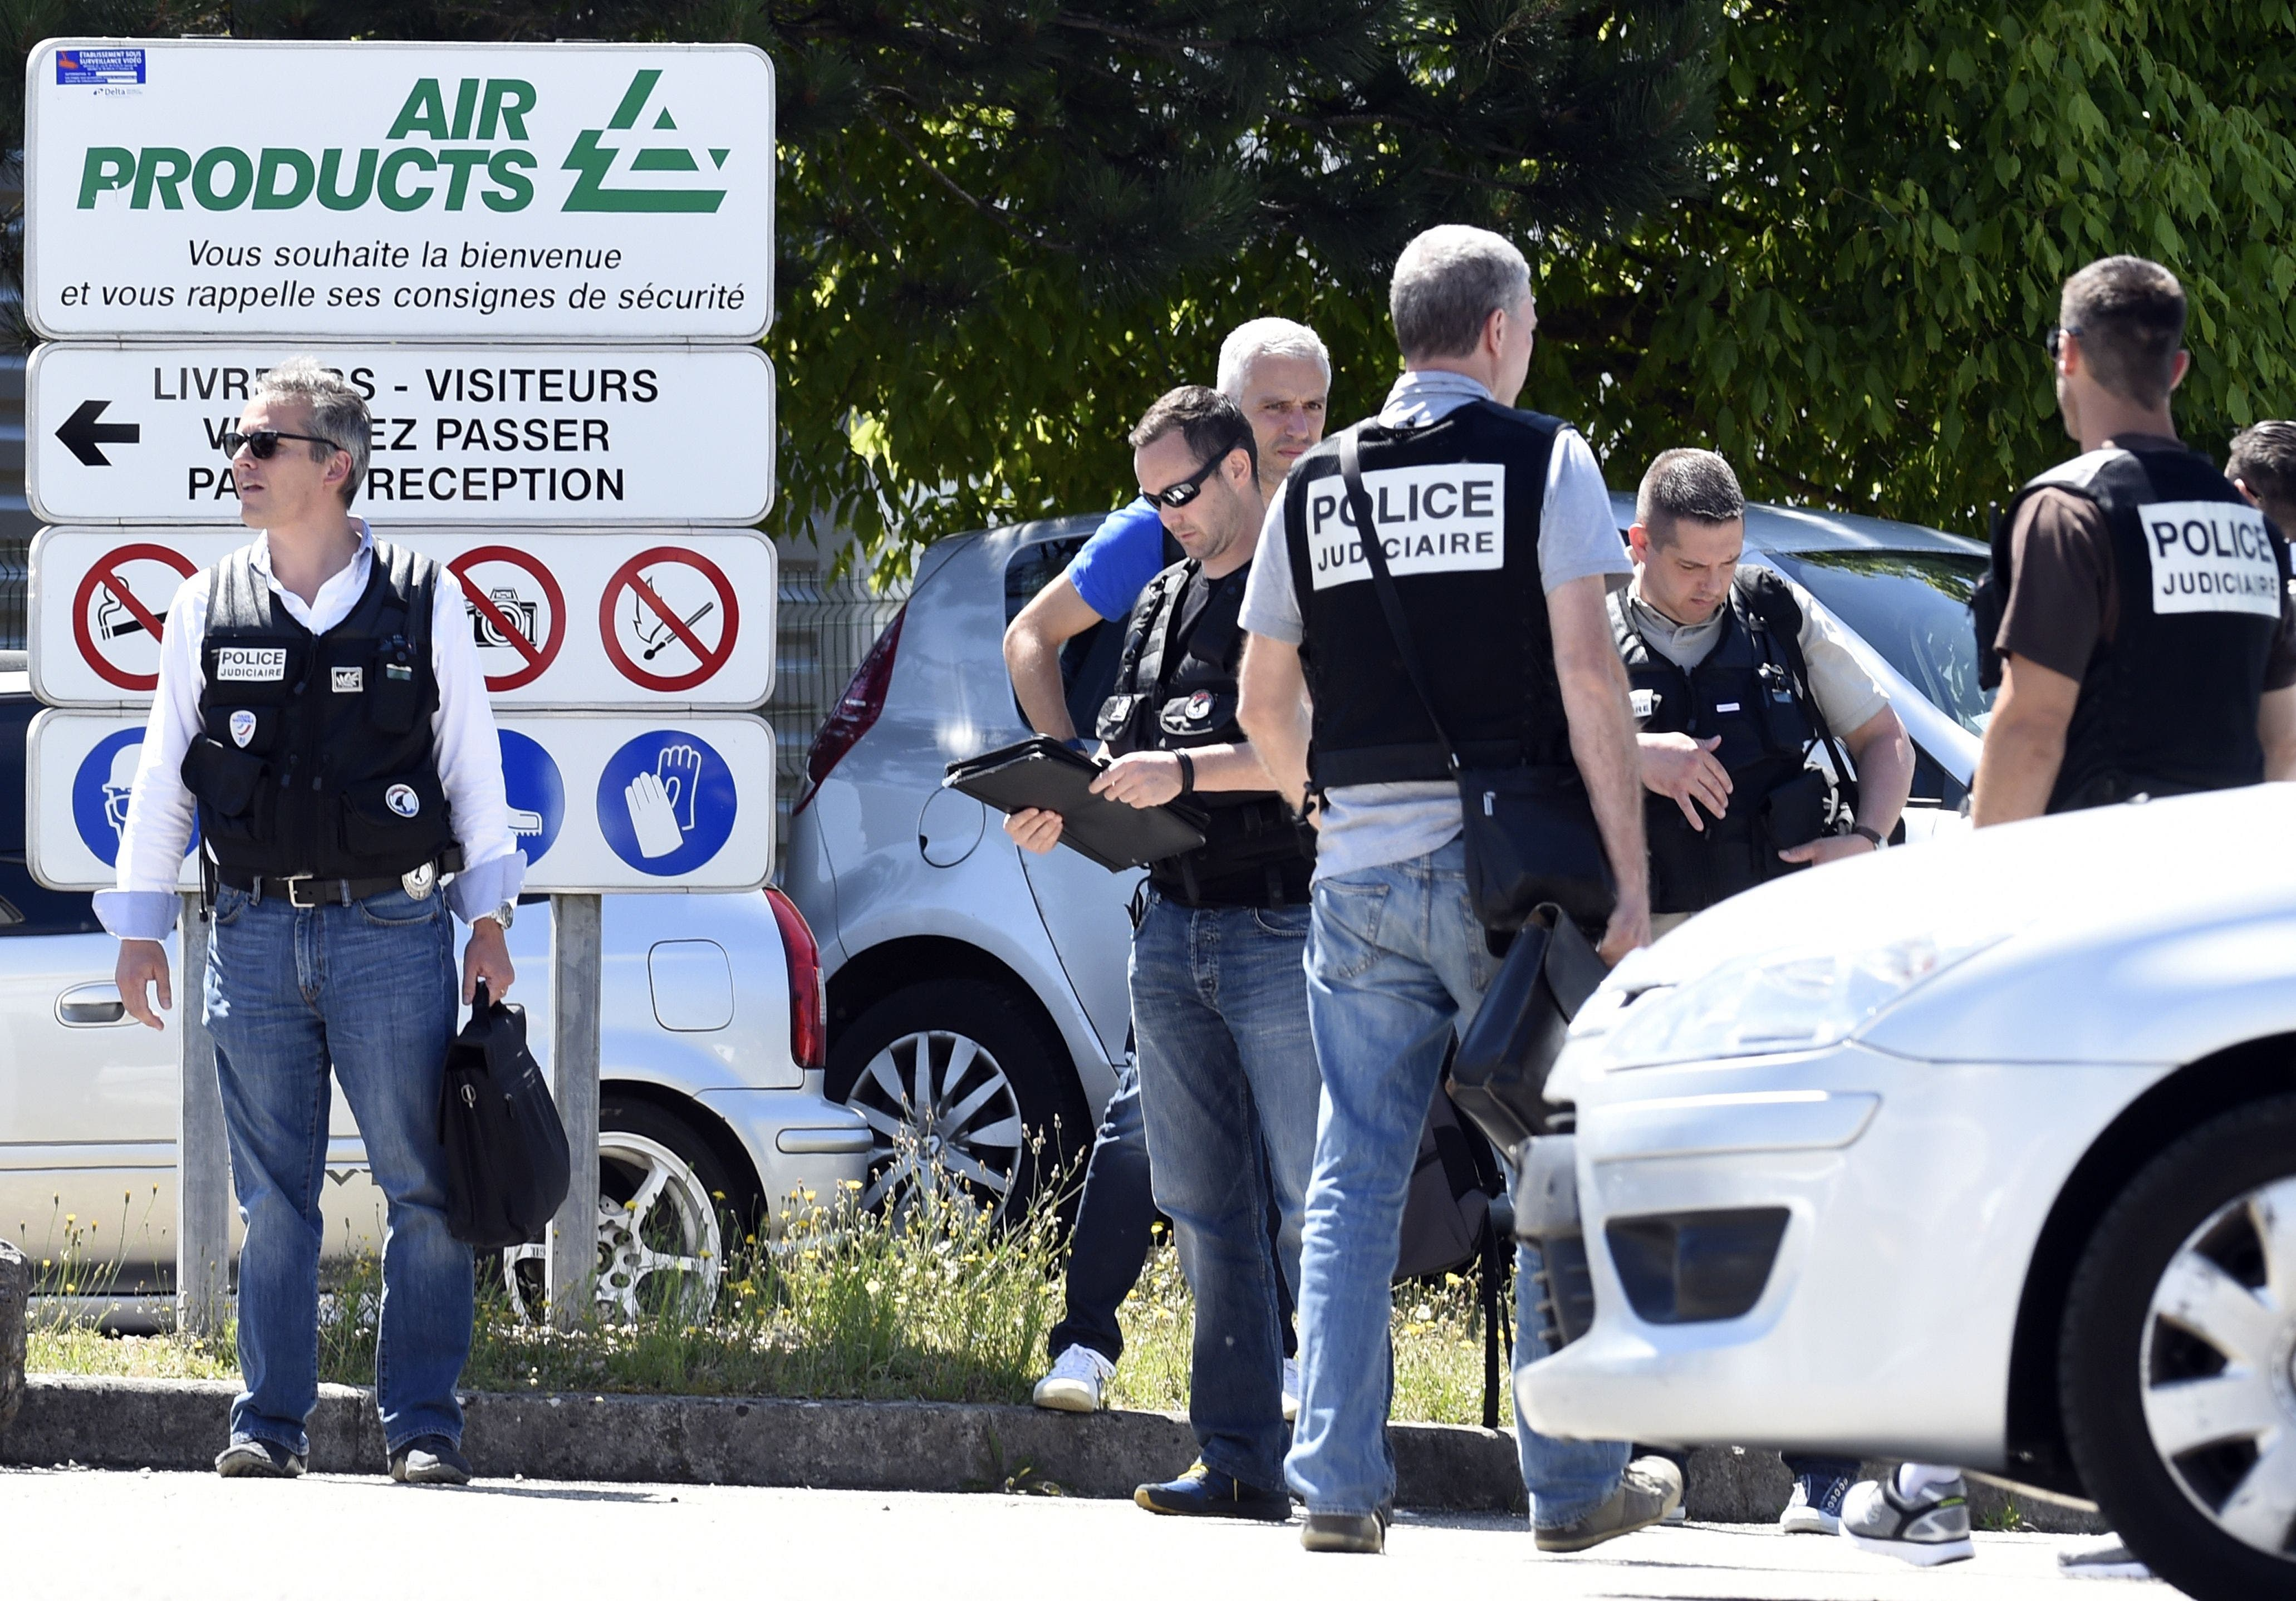 French police secure the entrance of the Air Products company in Saint-Quentin-Fallavier, near Lyon, central eastern France, on June 26, 2015. (AFP)